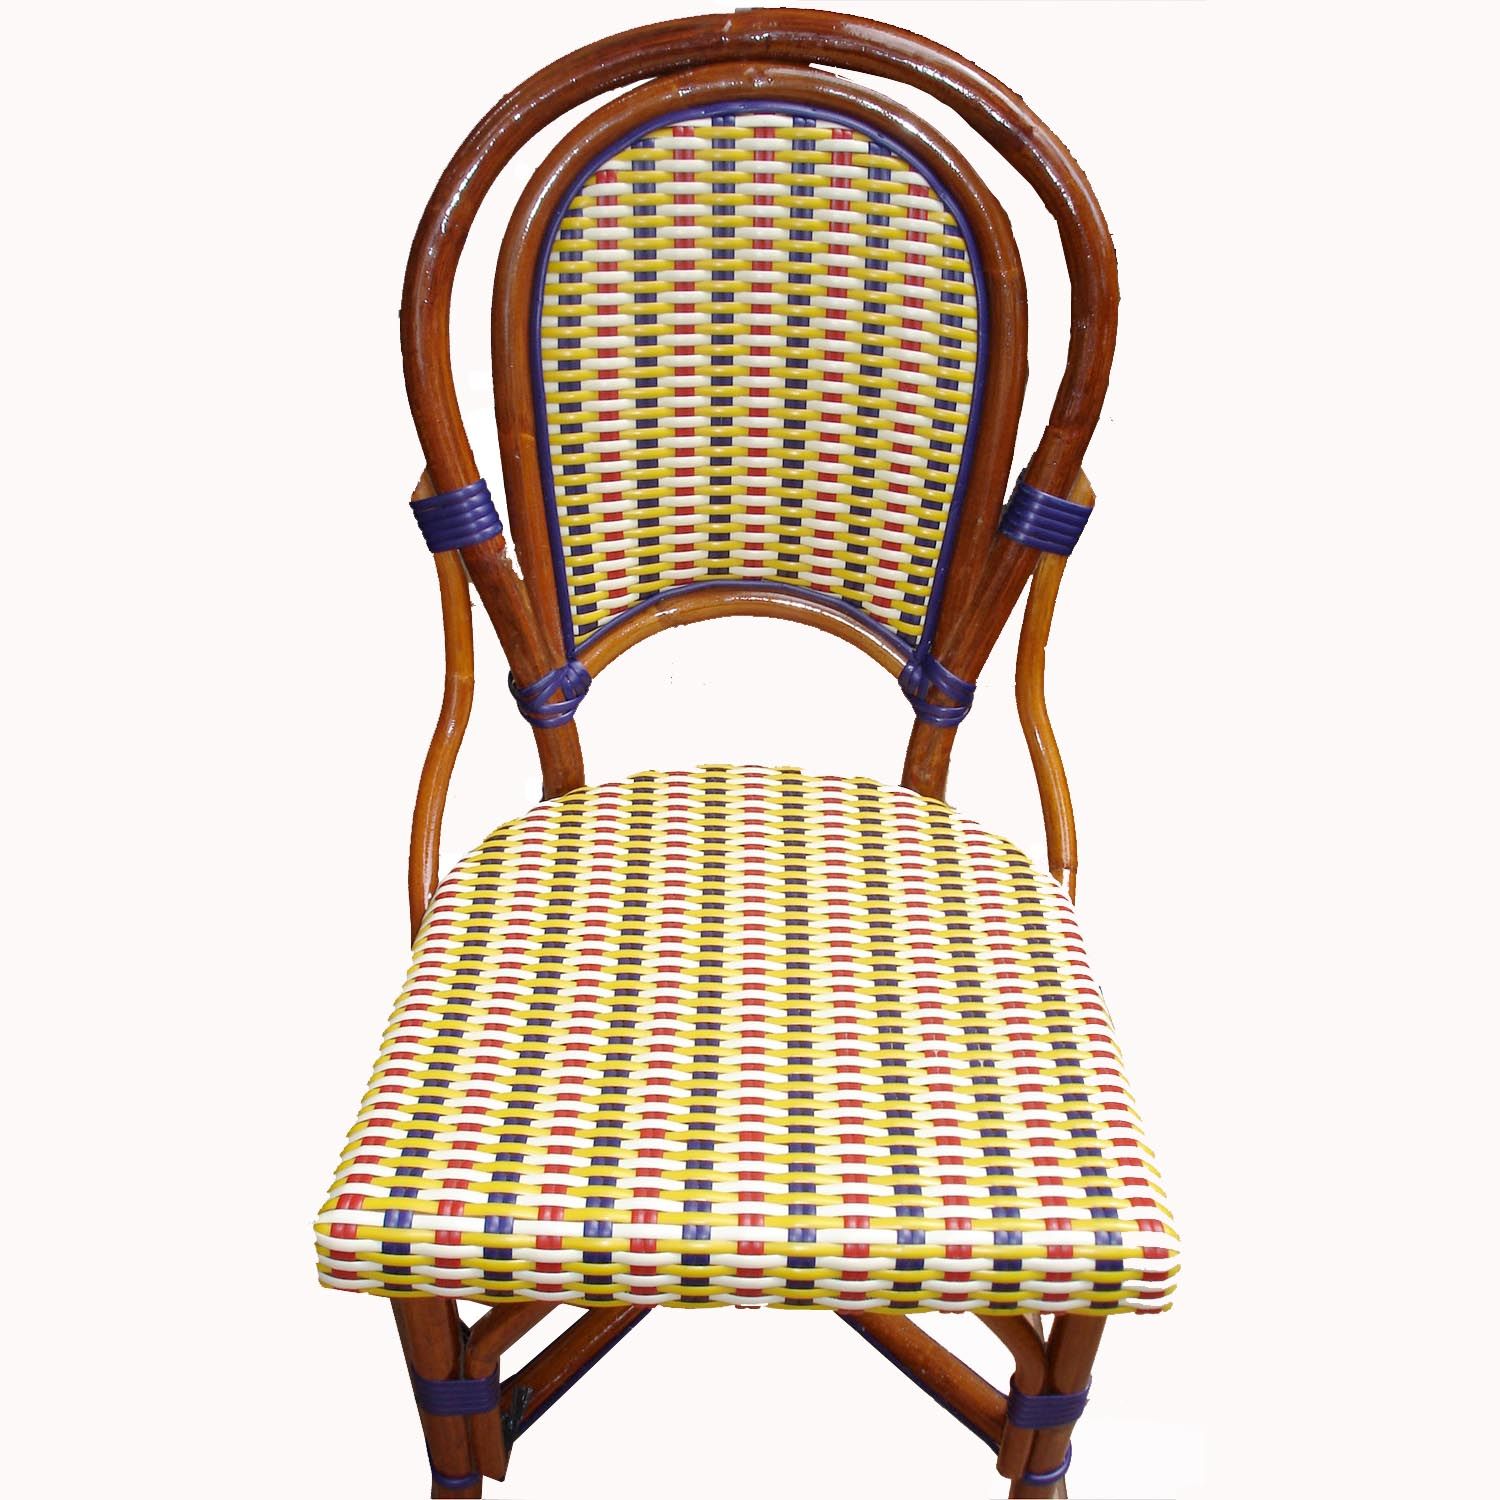 Bon Marais Rattan Chair Ivory/Red/Blu/Yell L1H2